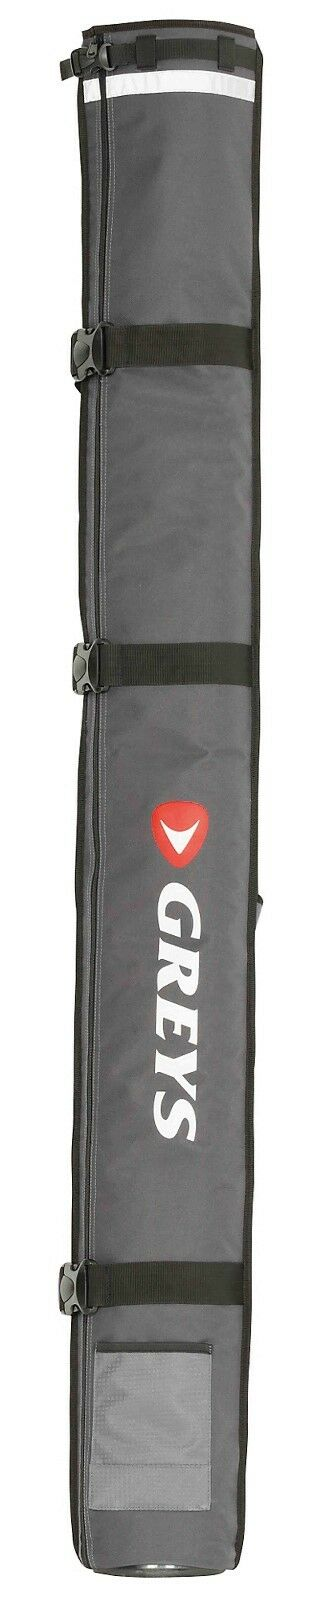 Greys Sea Fishing Rod Quiver holdall with Shoulder Strap - For Shore & Boat Rods